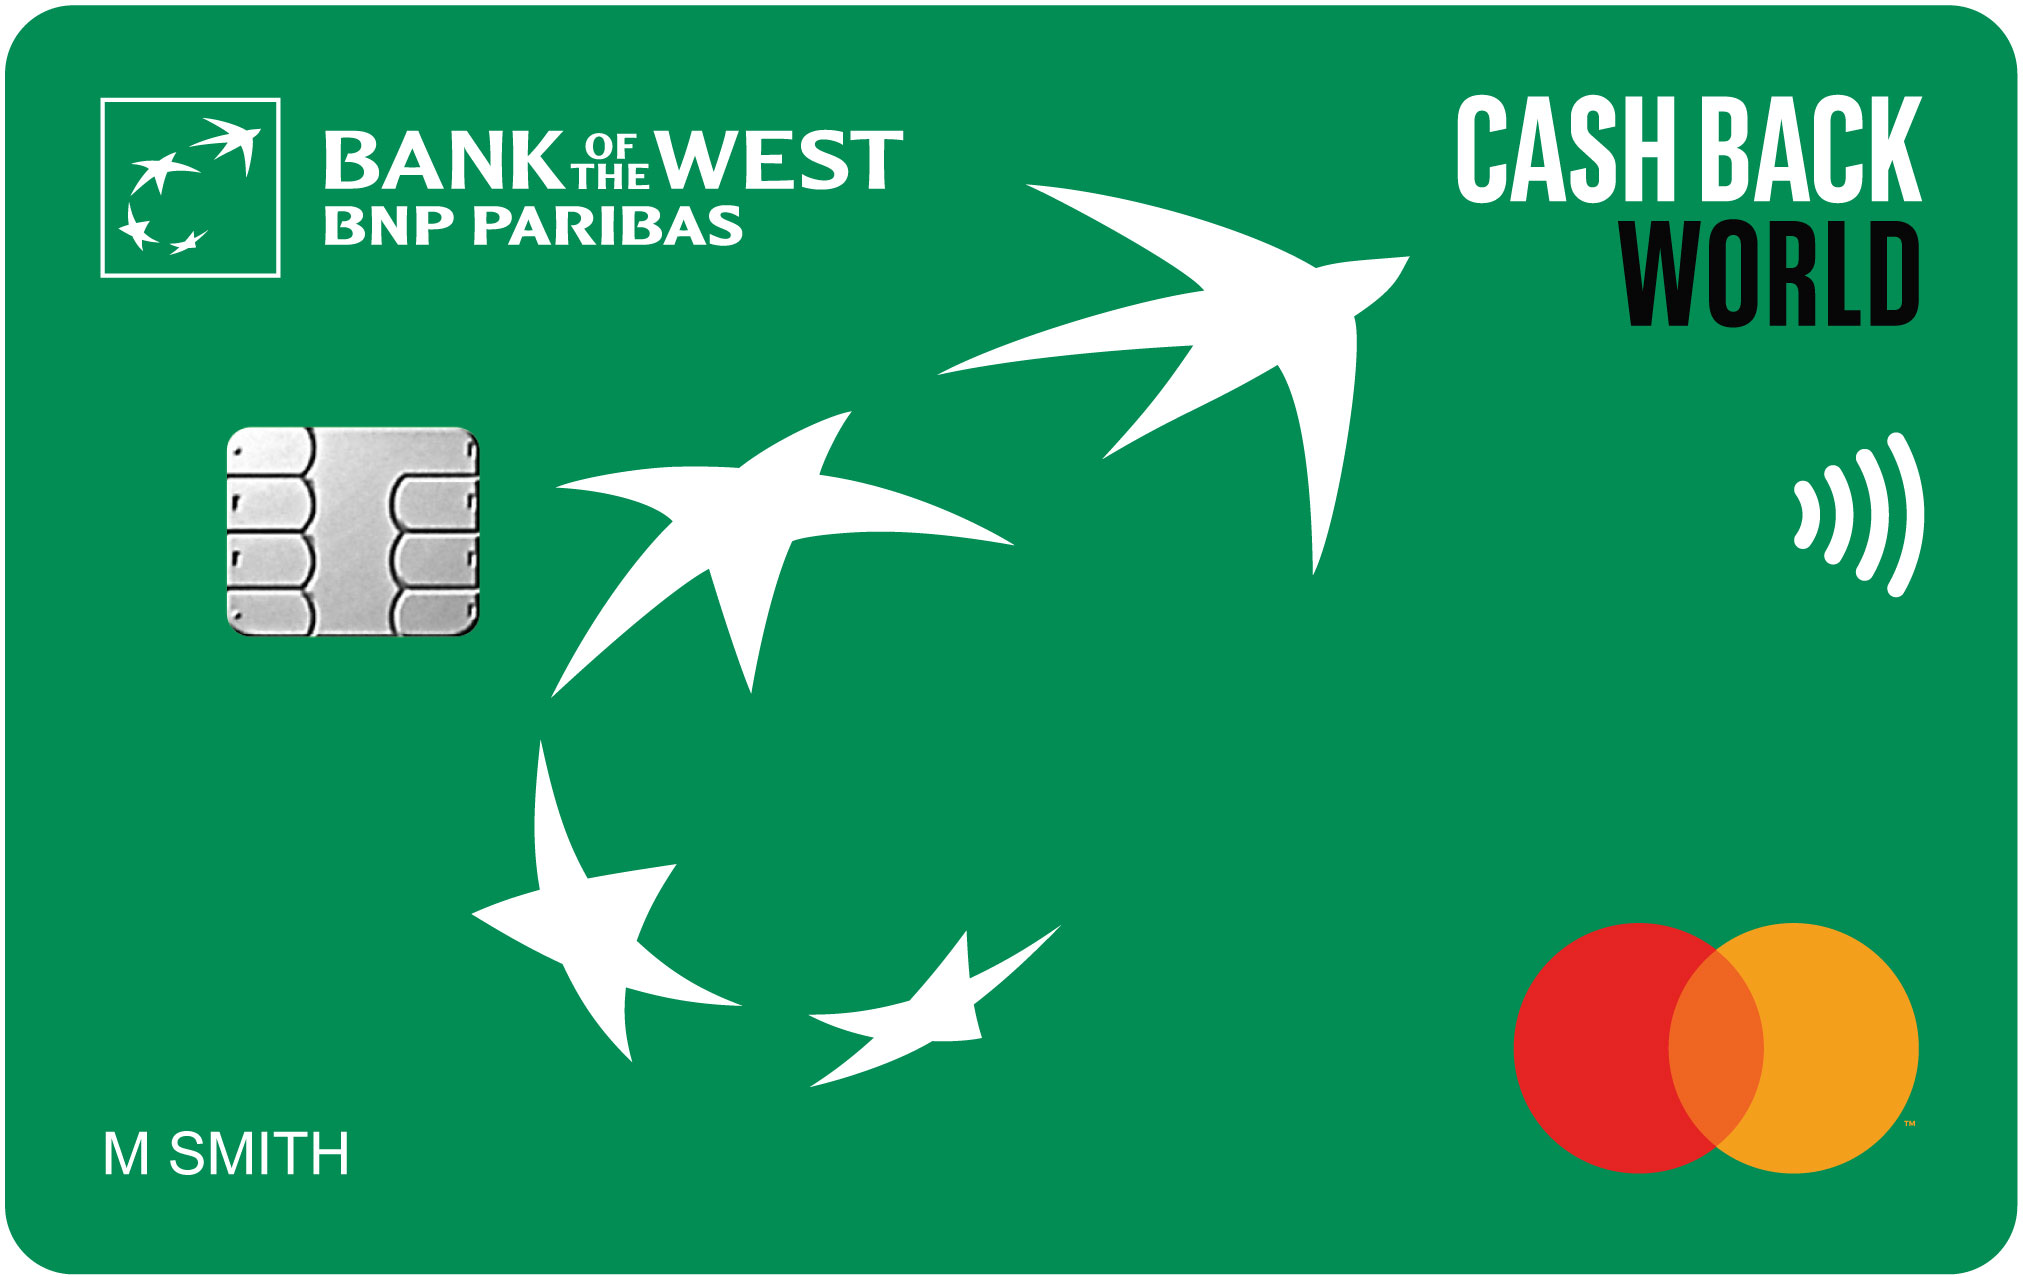 Image of a green cash back world credit card